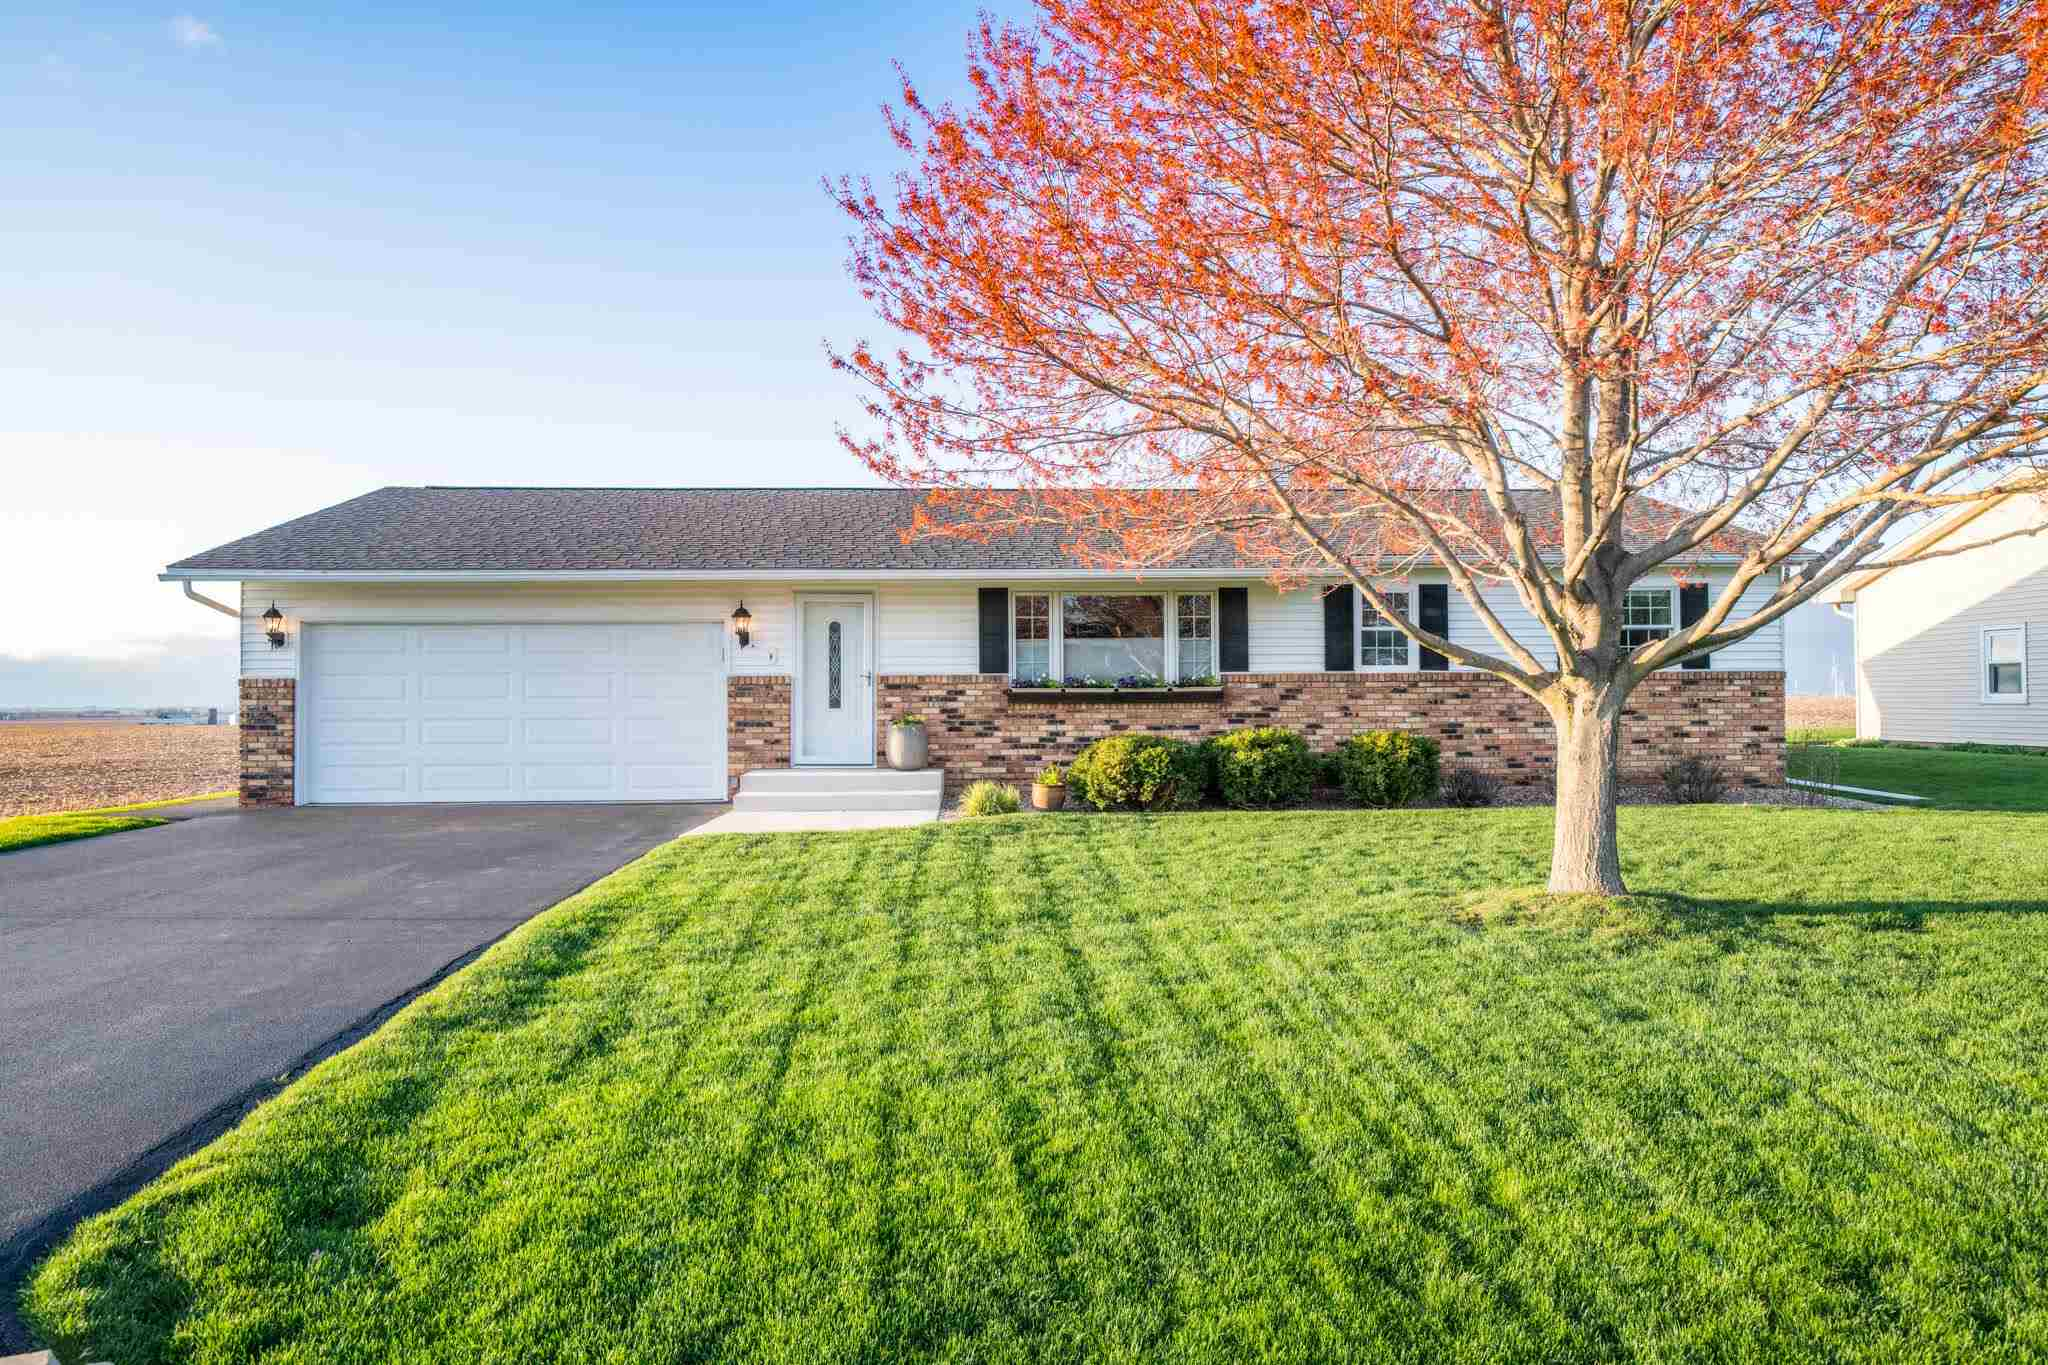 316 ENTERPRISE Property Photo - Bradford, IL real estate listing